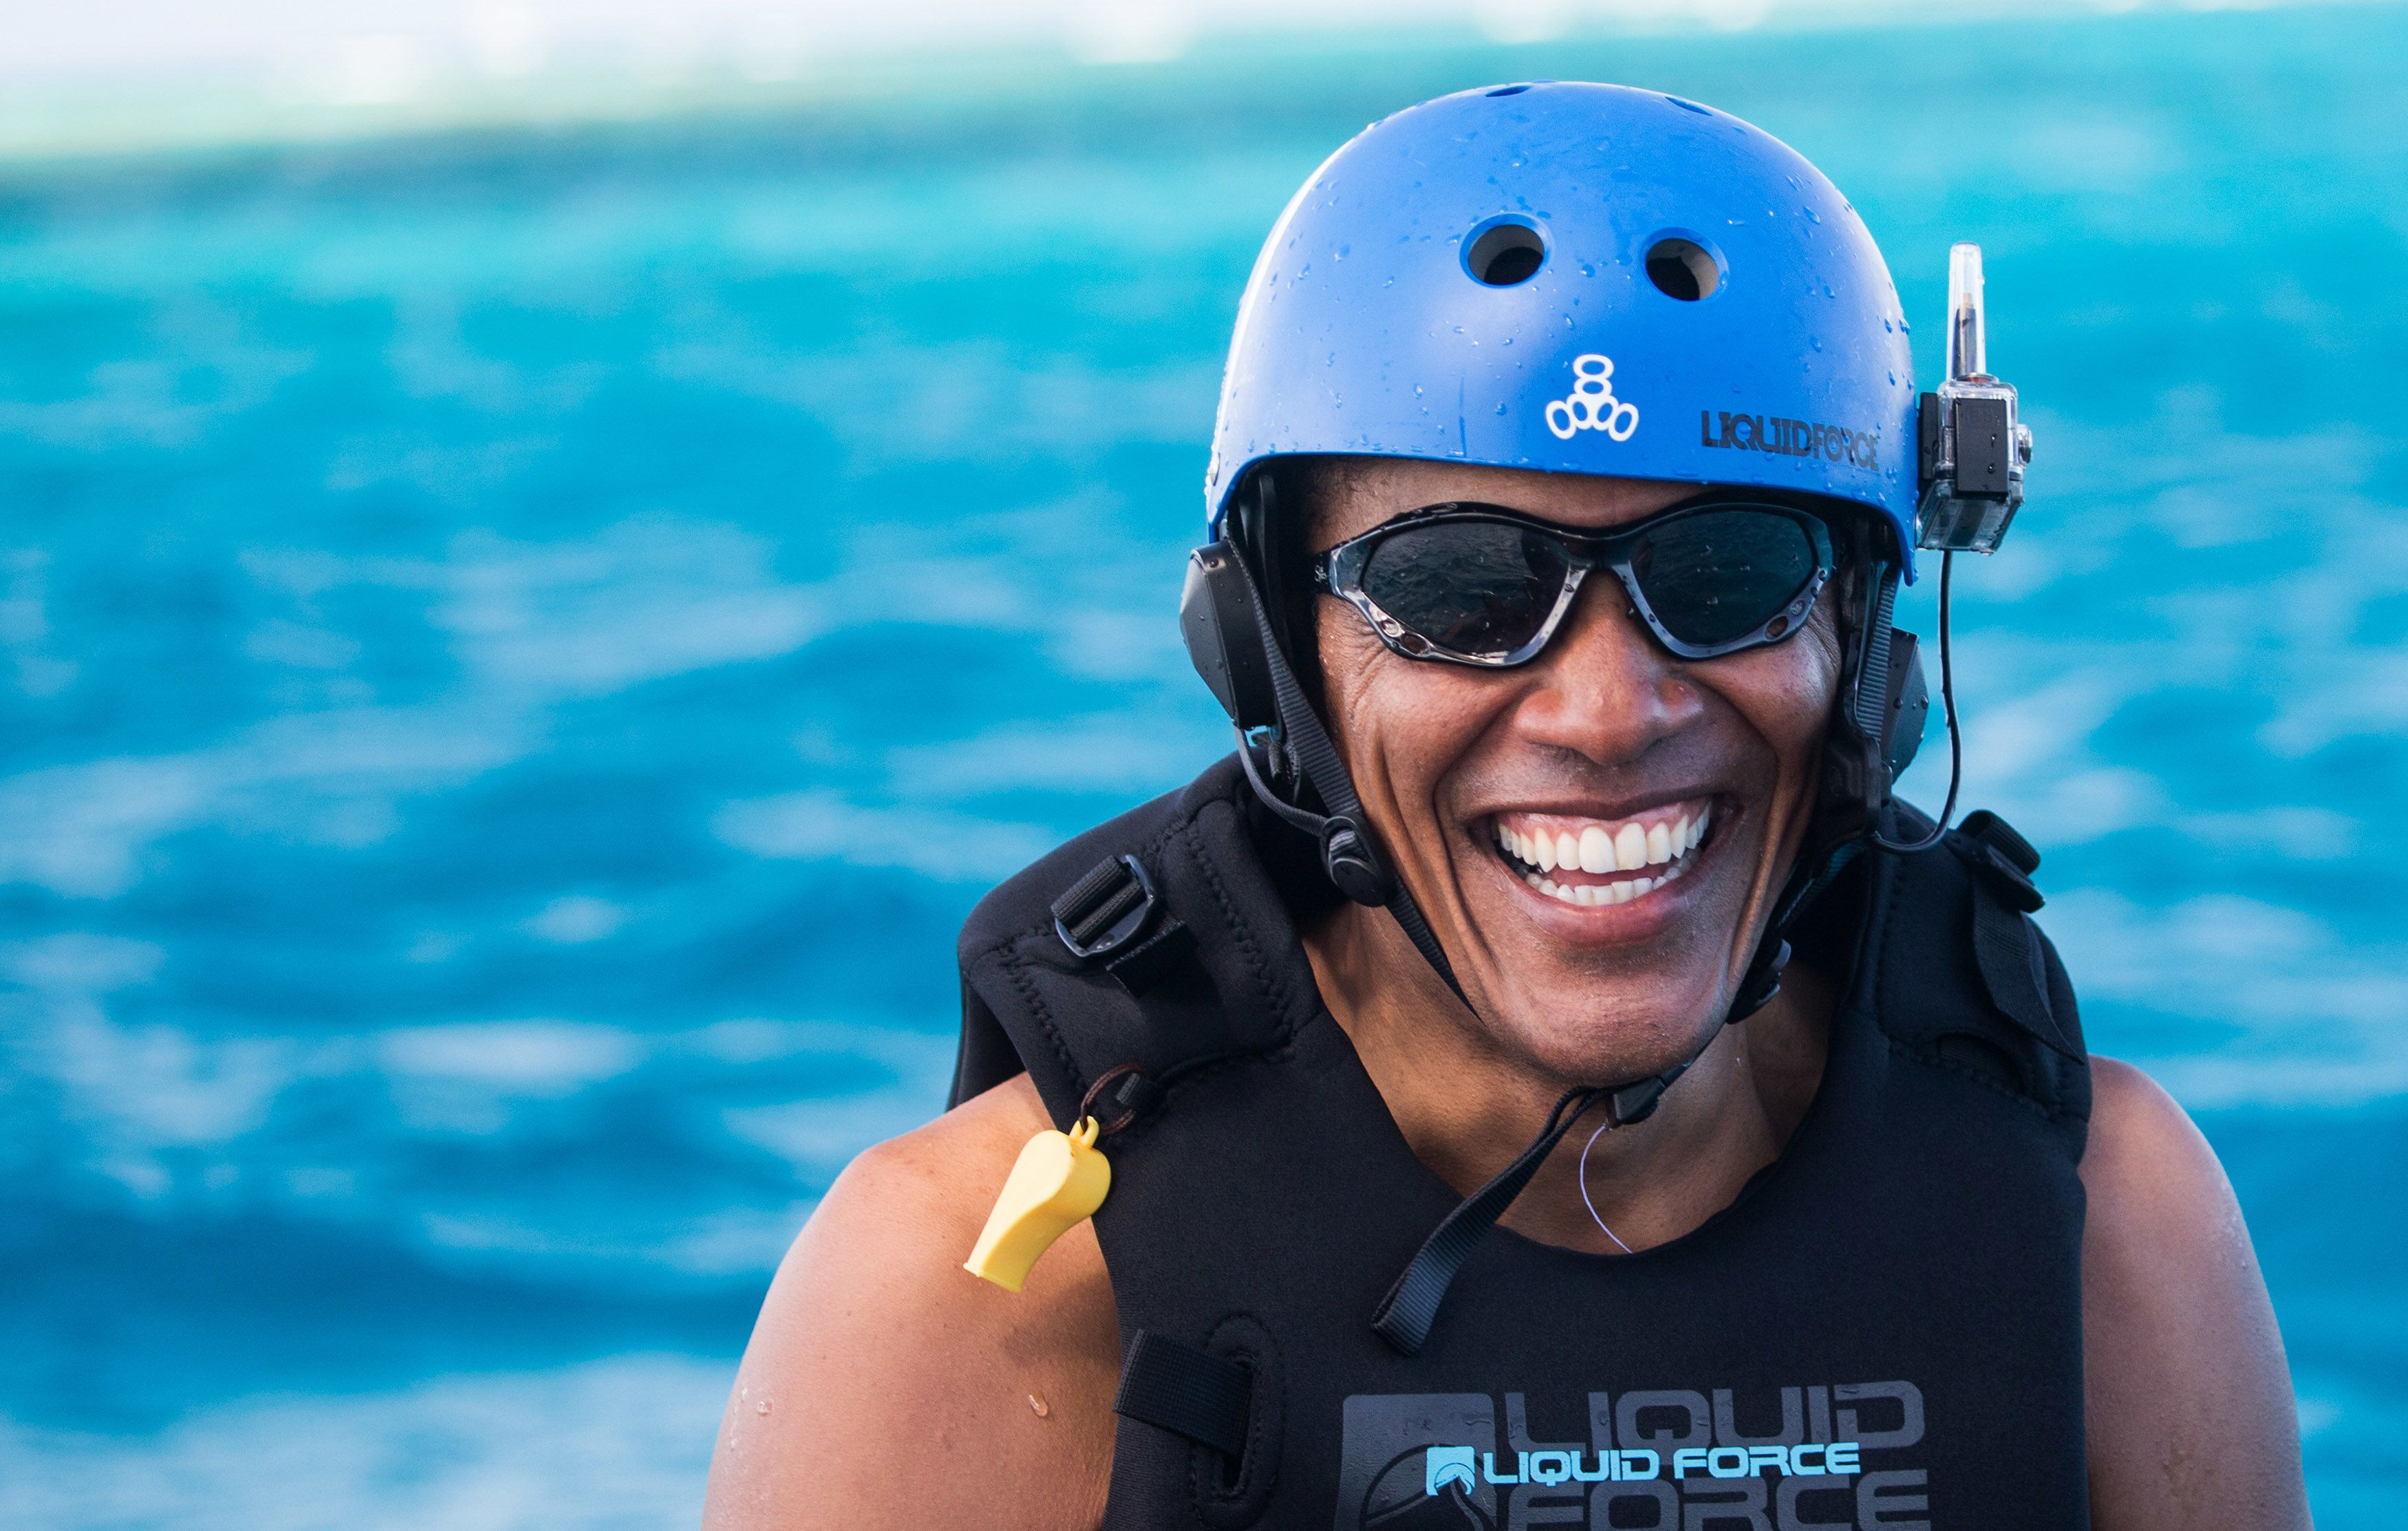 UNSPCIFIED, BRITISH VIRGIN ISLANDS - FEBRUARY 1: In this undated image Former President Barack Obama takes a break from learning to kitesurf at Richard Branson's Necker Island retreat on February 1, 2017 in the British Virgin Islands. Former President Obama and his wife Michelle have been on an extended vacation since leaving office on January 20.  (Photo by Jack Brockway/Getty Images)